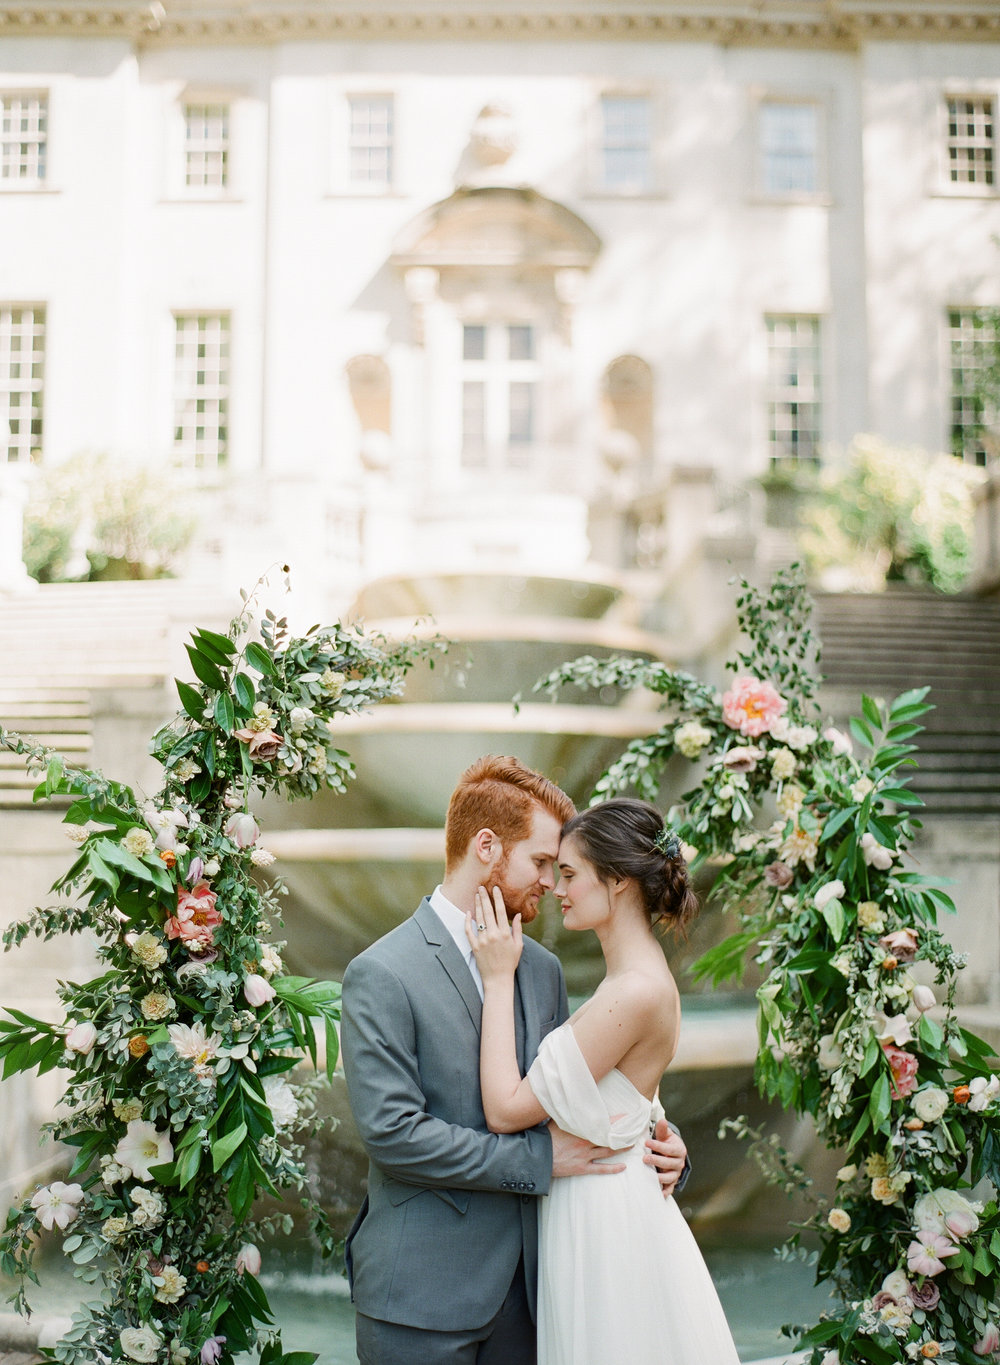 Swan house atlanta southeast wedding photographer taylor sellers photography 37.jpg